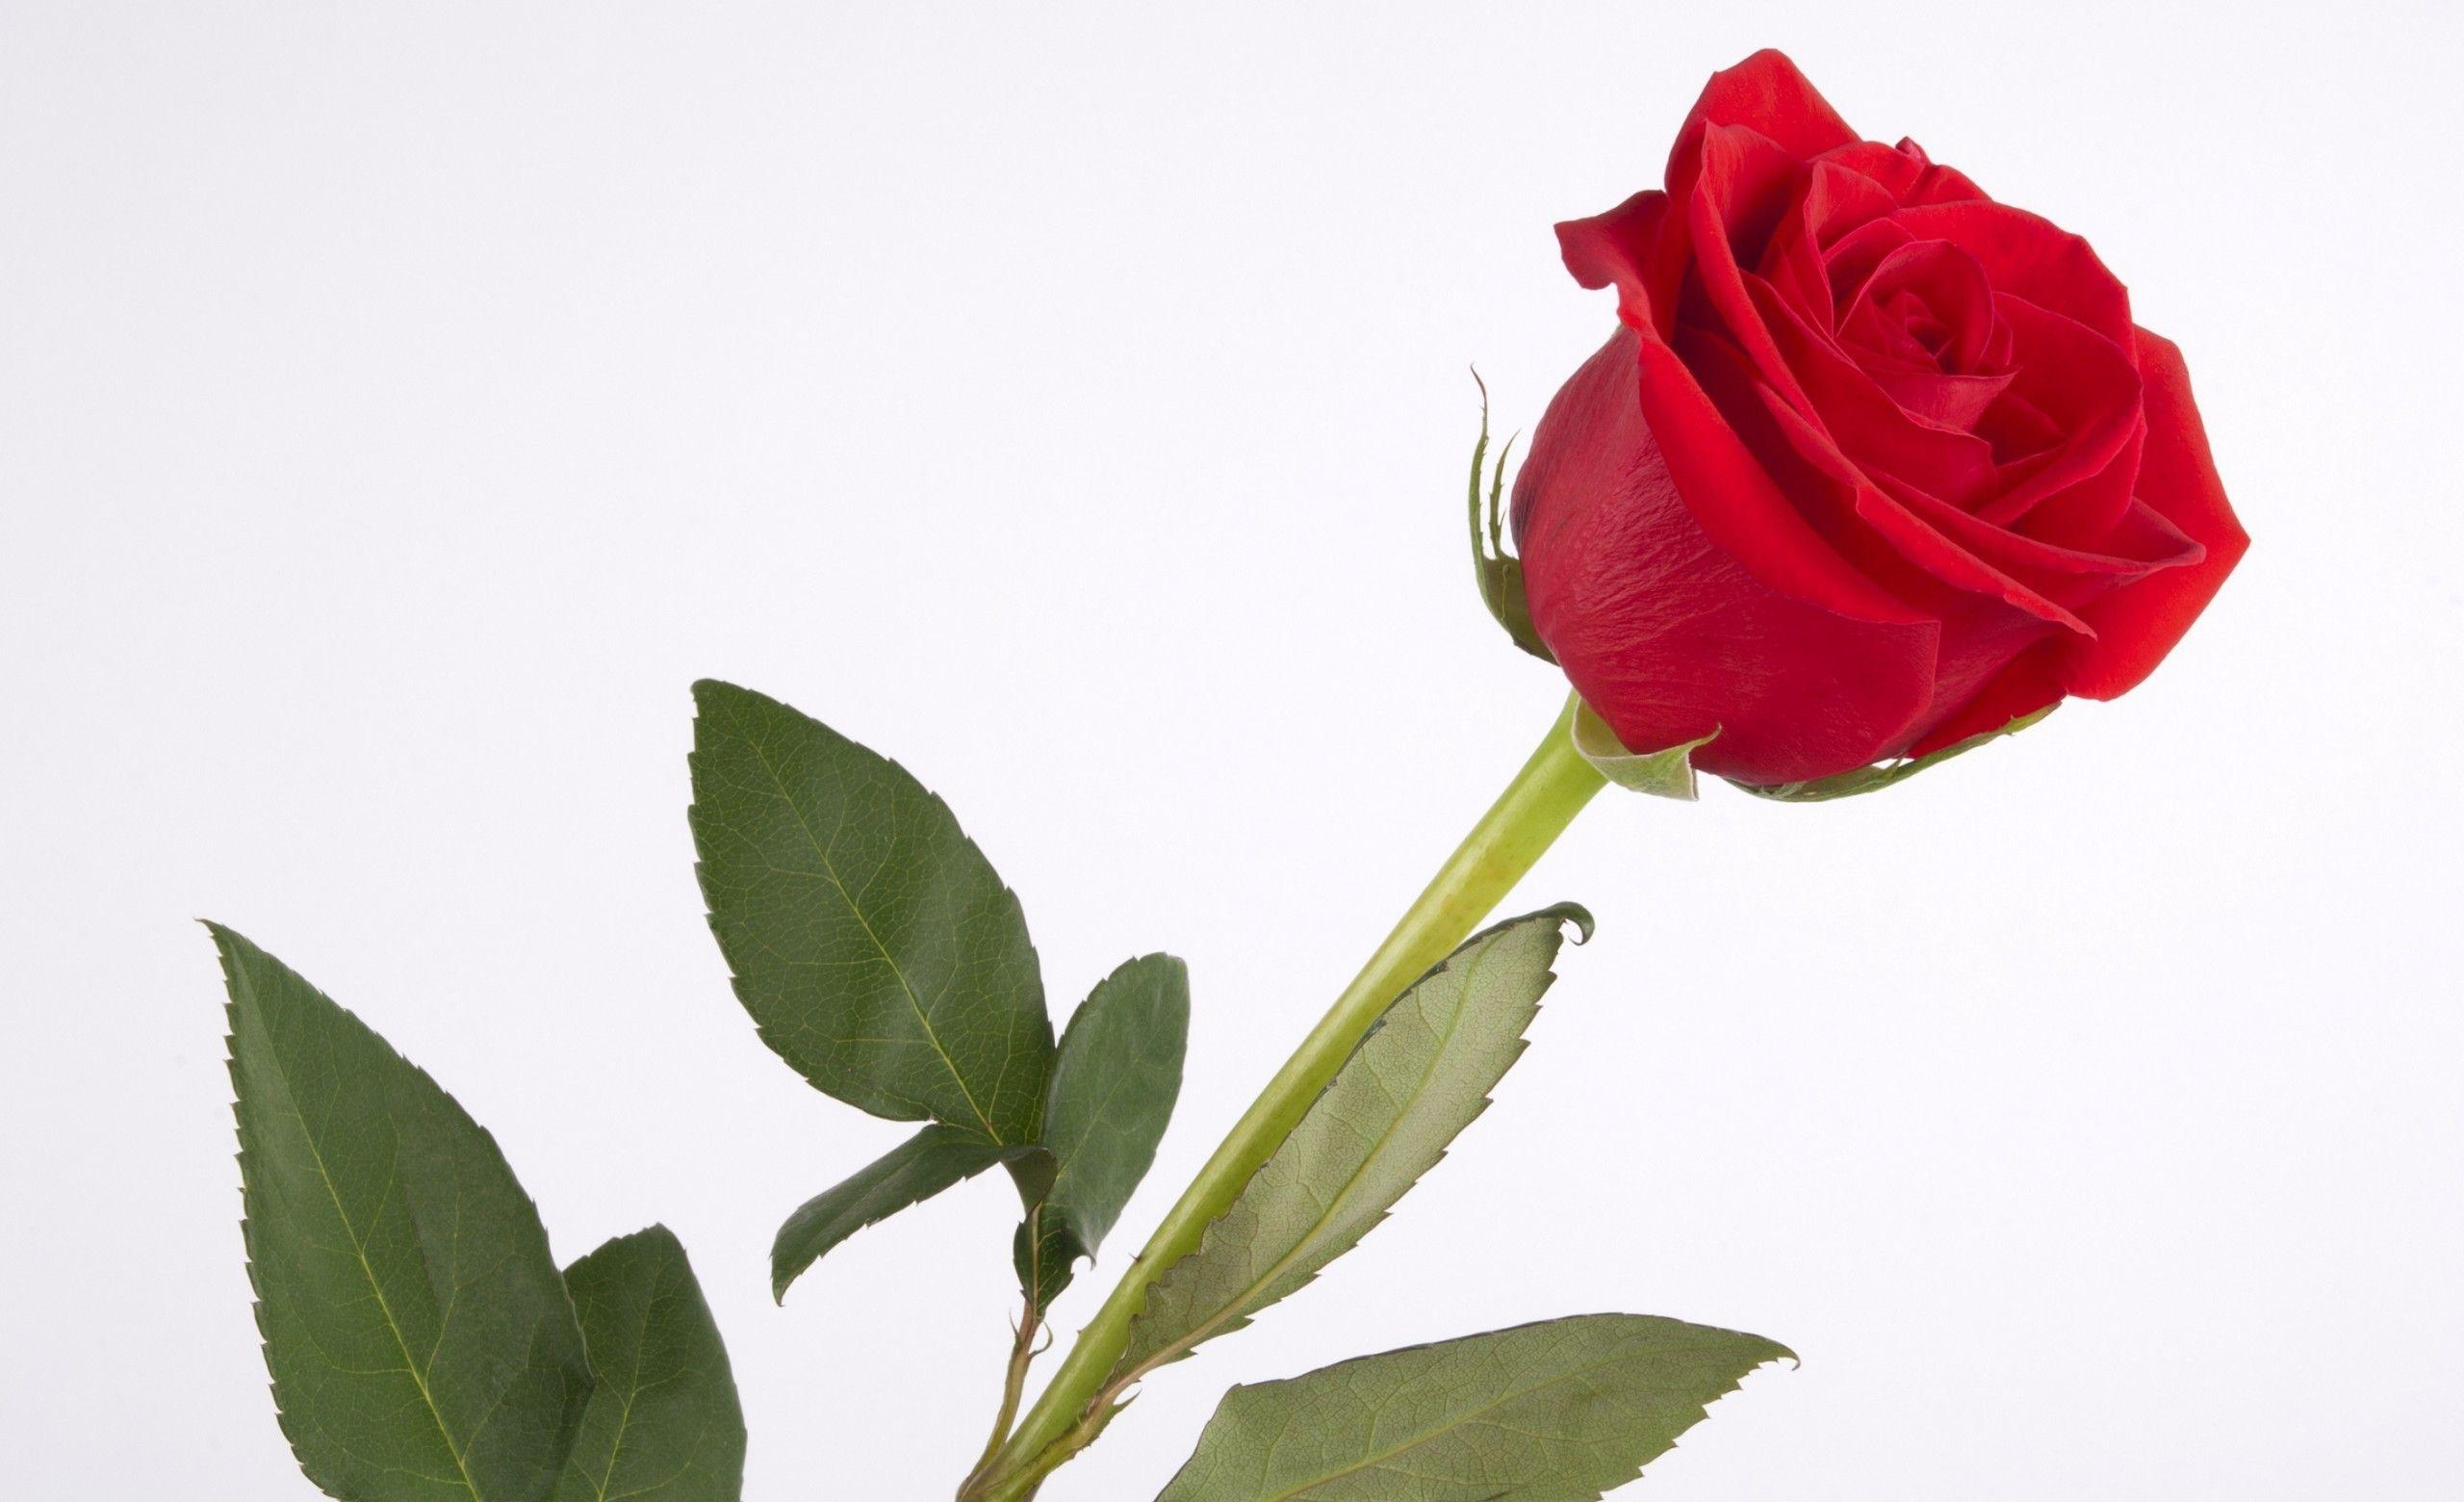 Hd wallpaper red rose - Images For Single Red Rose Hd Wallpaper